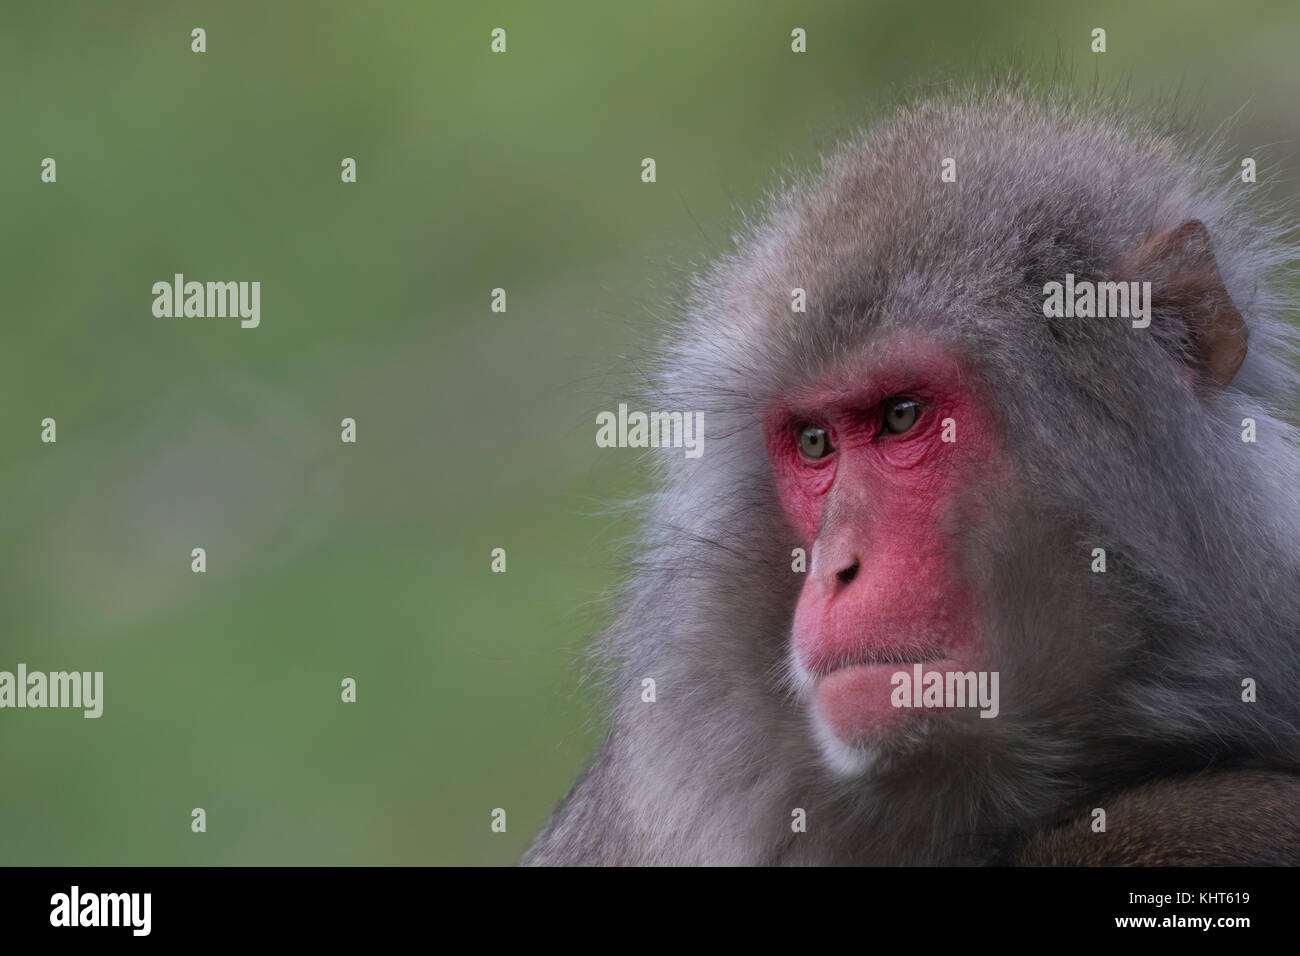 snow monkeys, Japanese macaque, Macaca fuscata, captive, young, old, close up portraits alone and in family group Stock Photo